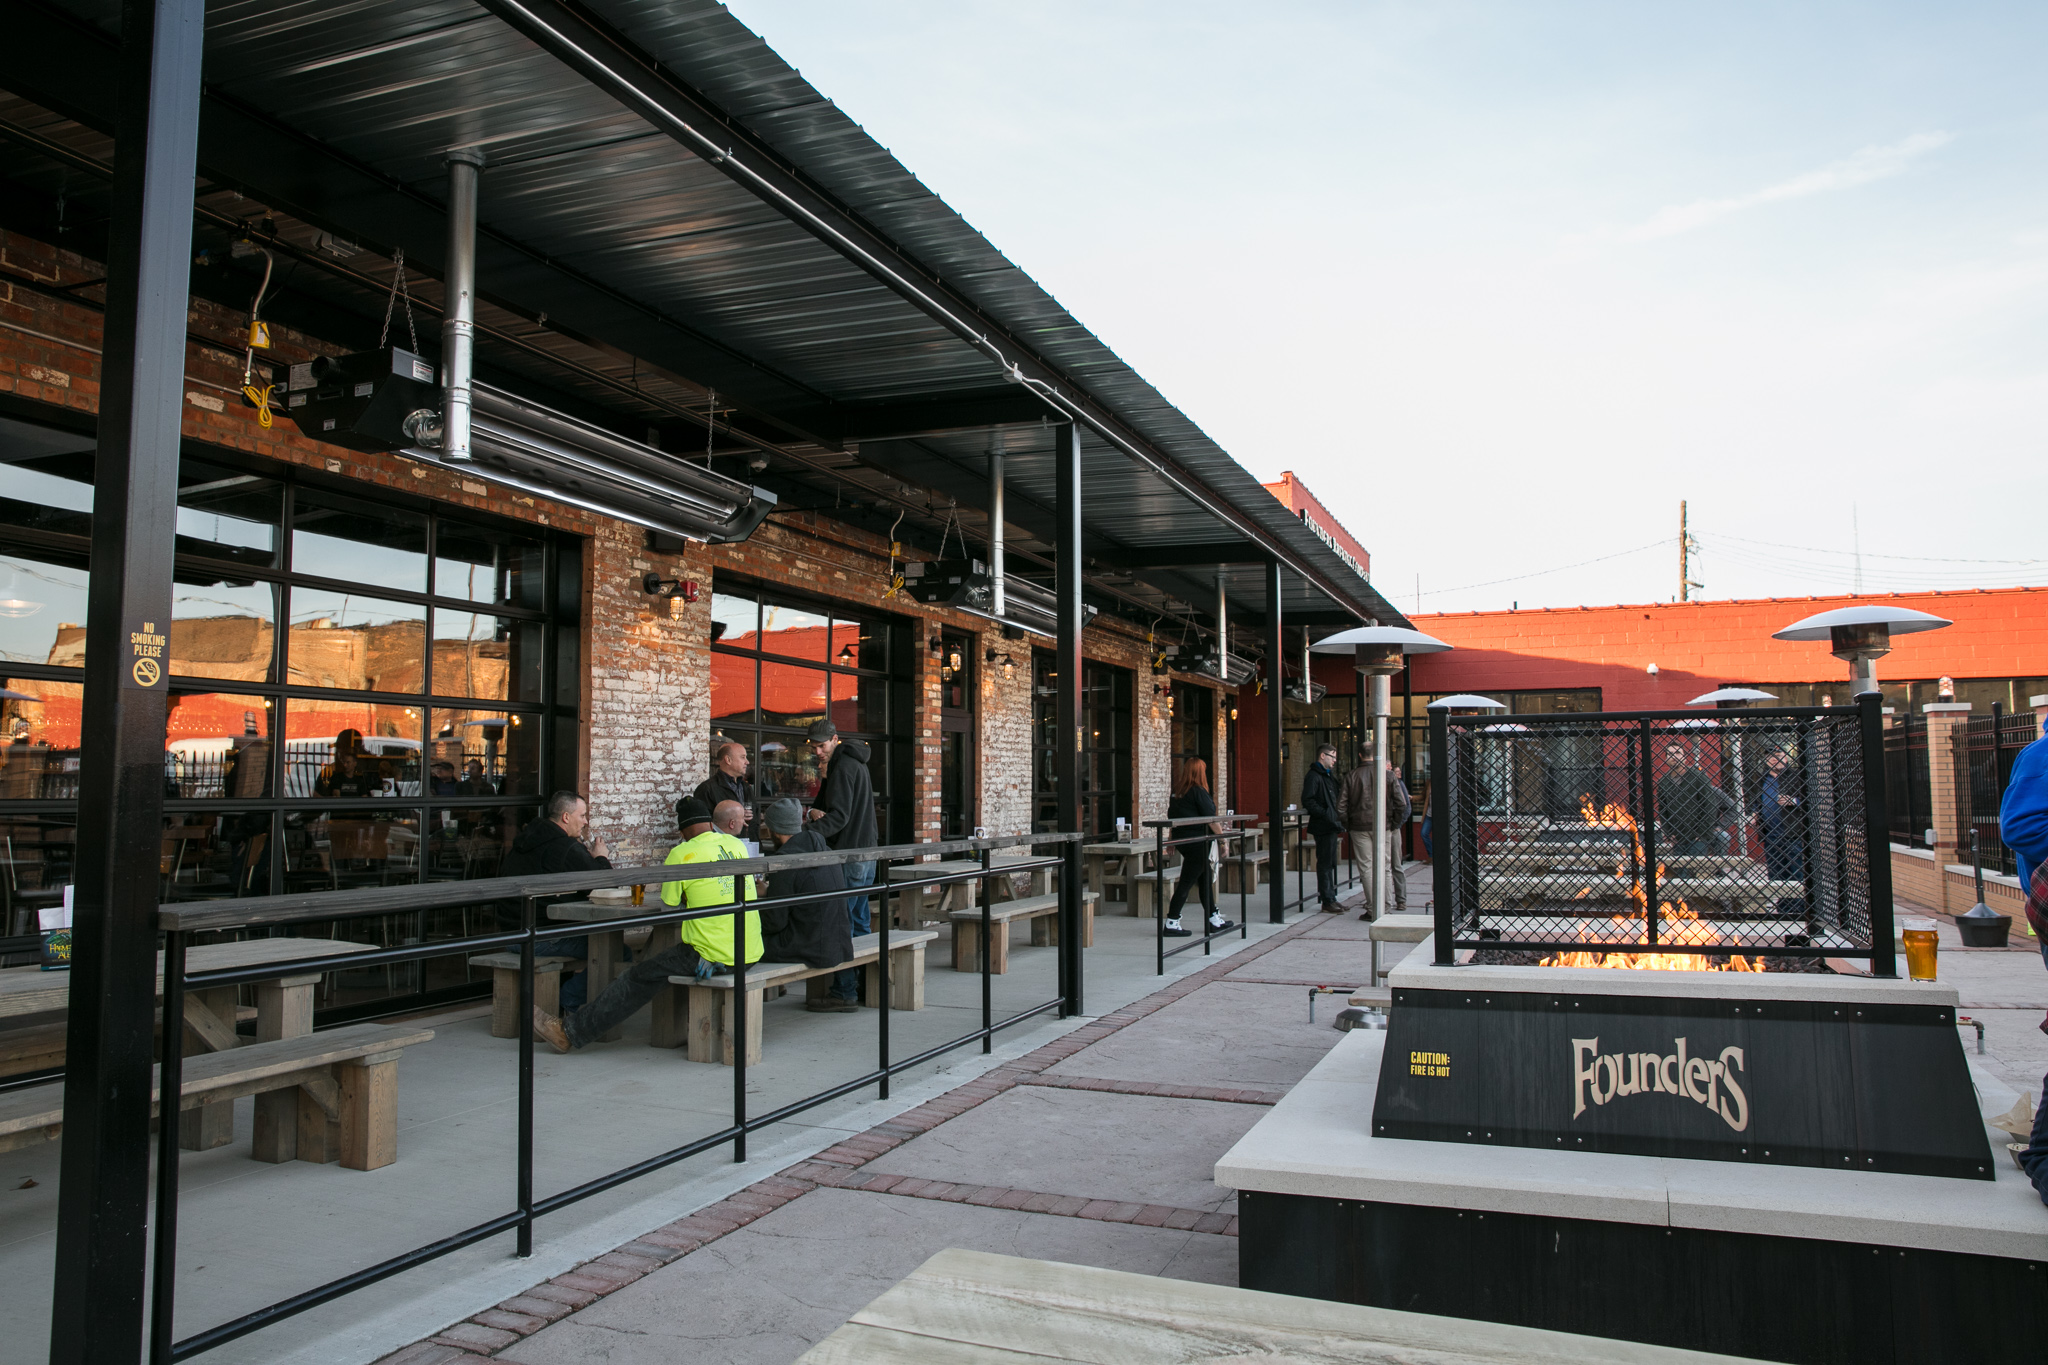 The patio at Founders in Detroit features a firepit with the logo on it.